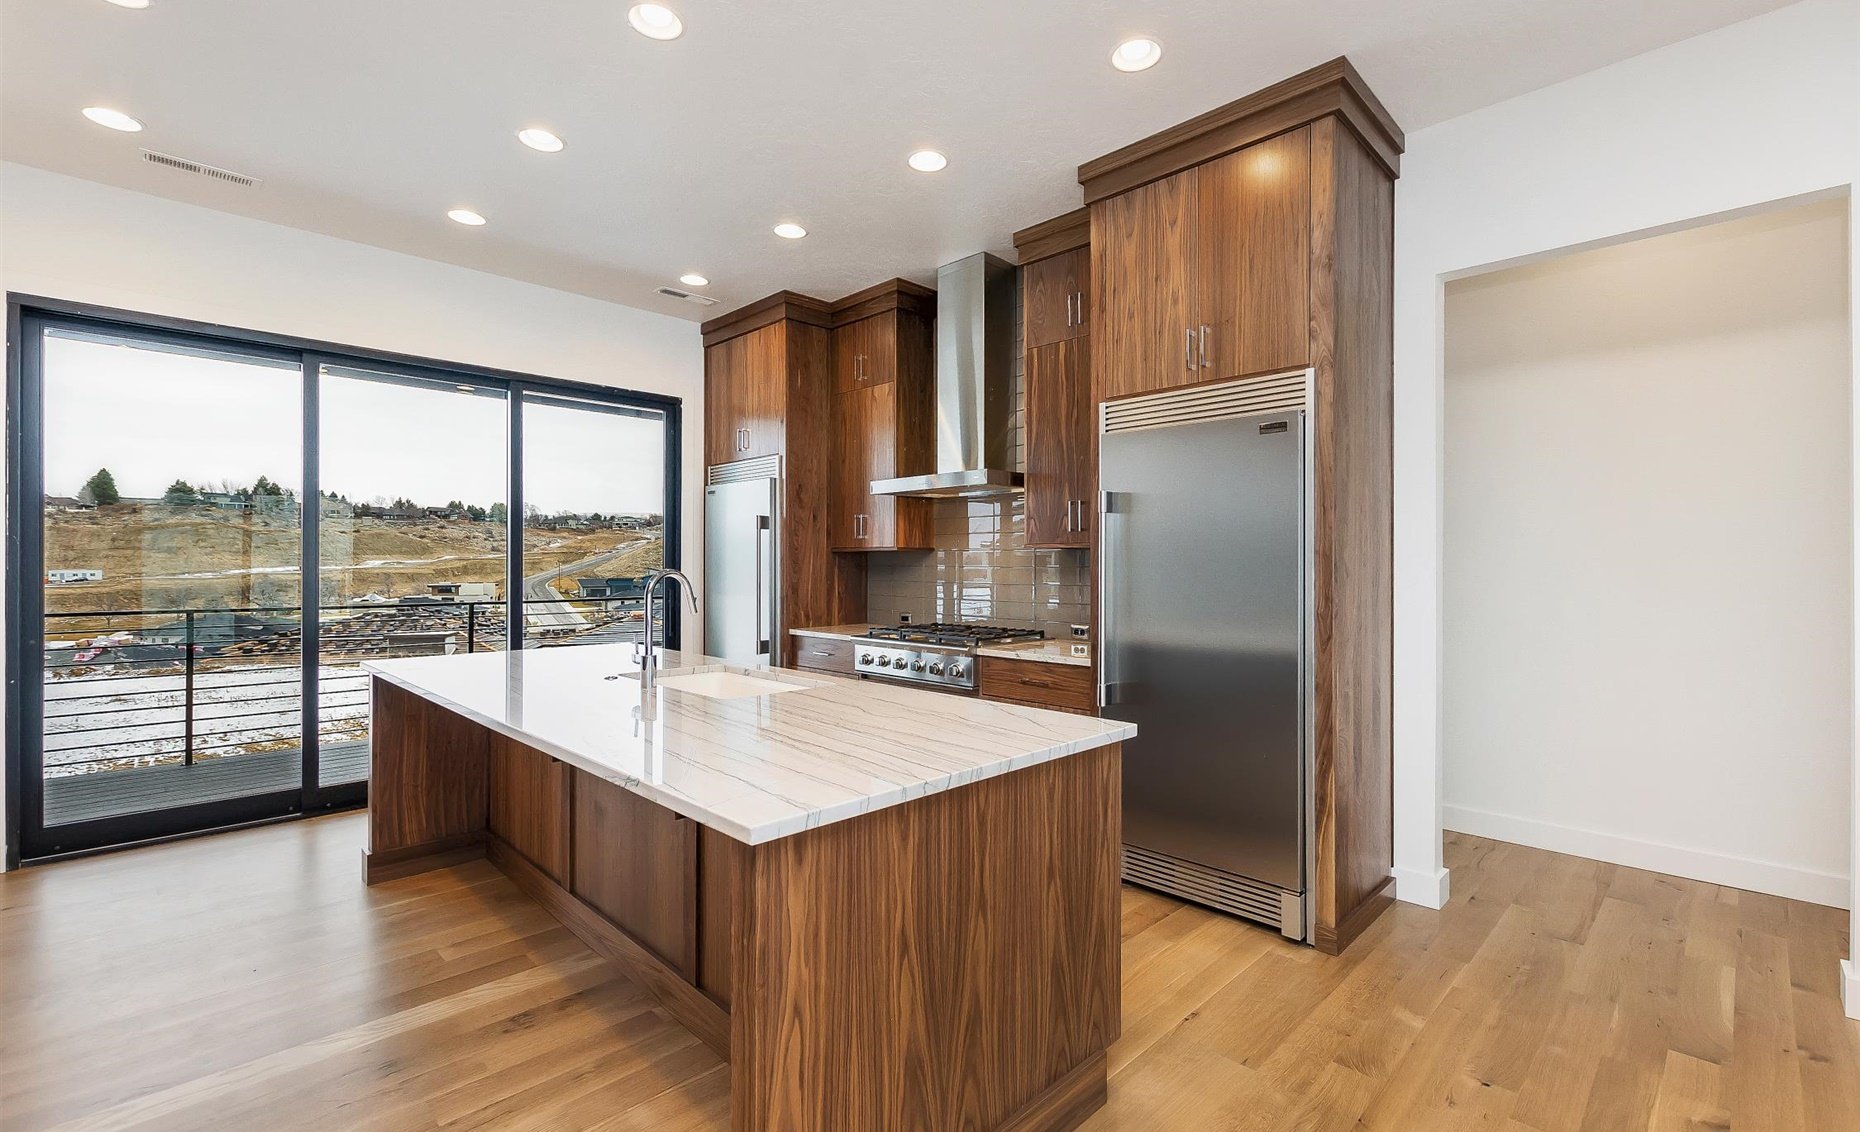 East Highland | Kitchen with balcony view